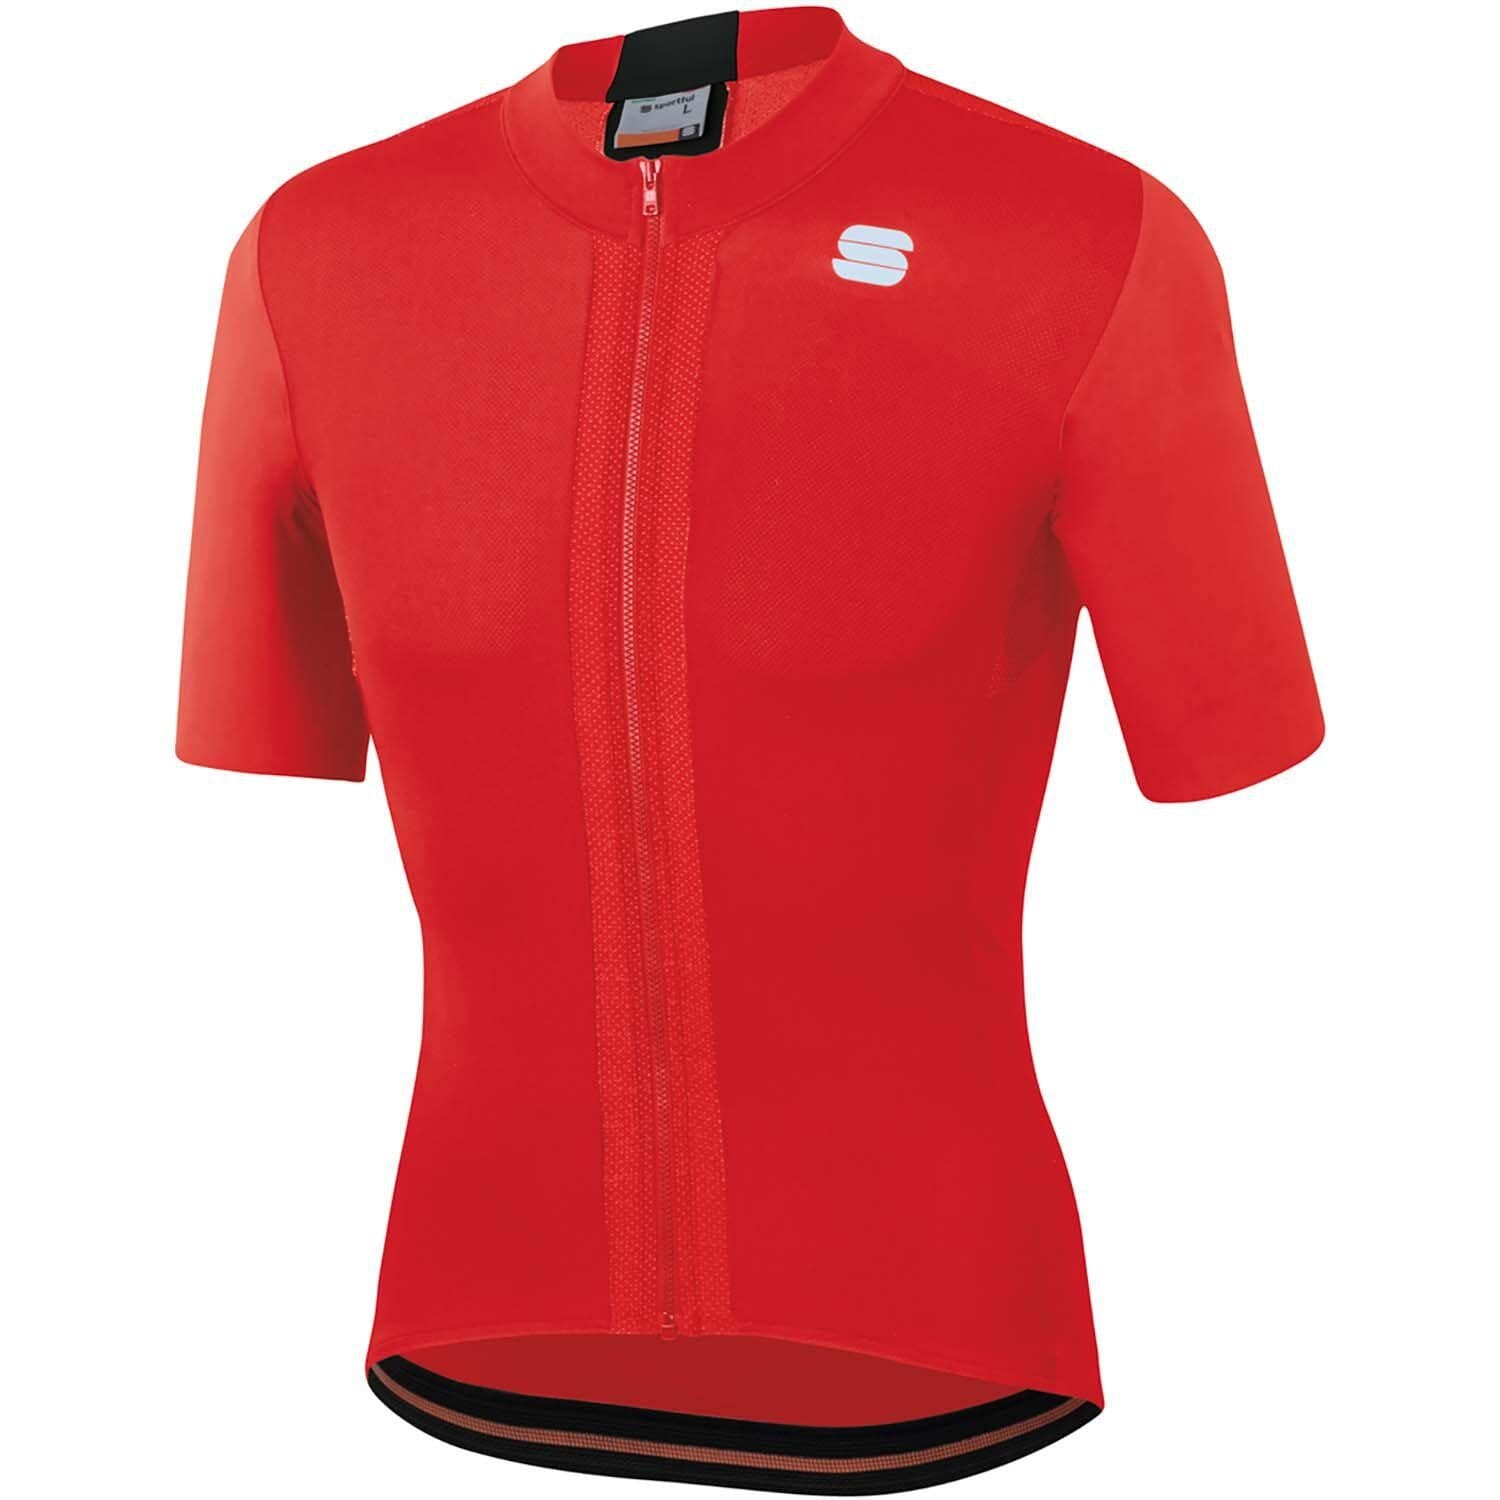 Sportful-Sportful Strike Jersey-Red/Black-XS-SF200125671-saddleback-elite-performance-cycling